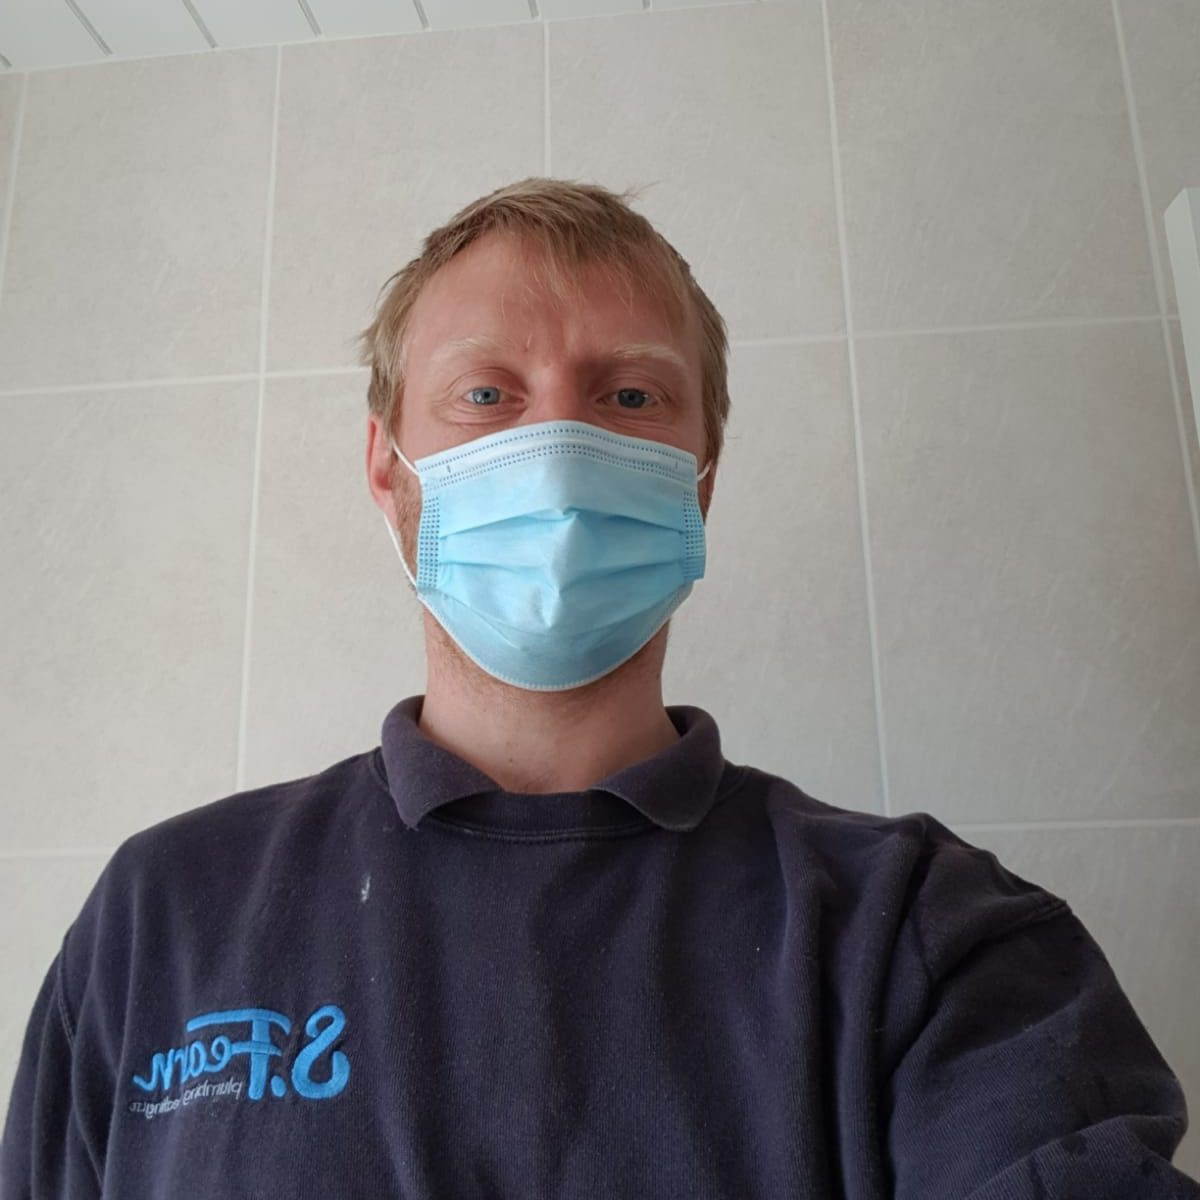 Steve The Plumber Wearing Corona Virus Personal Protective Equipment